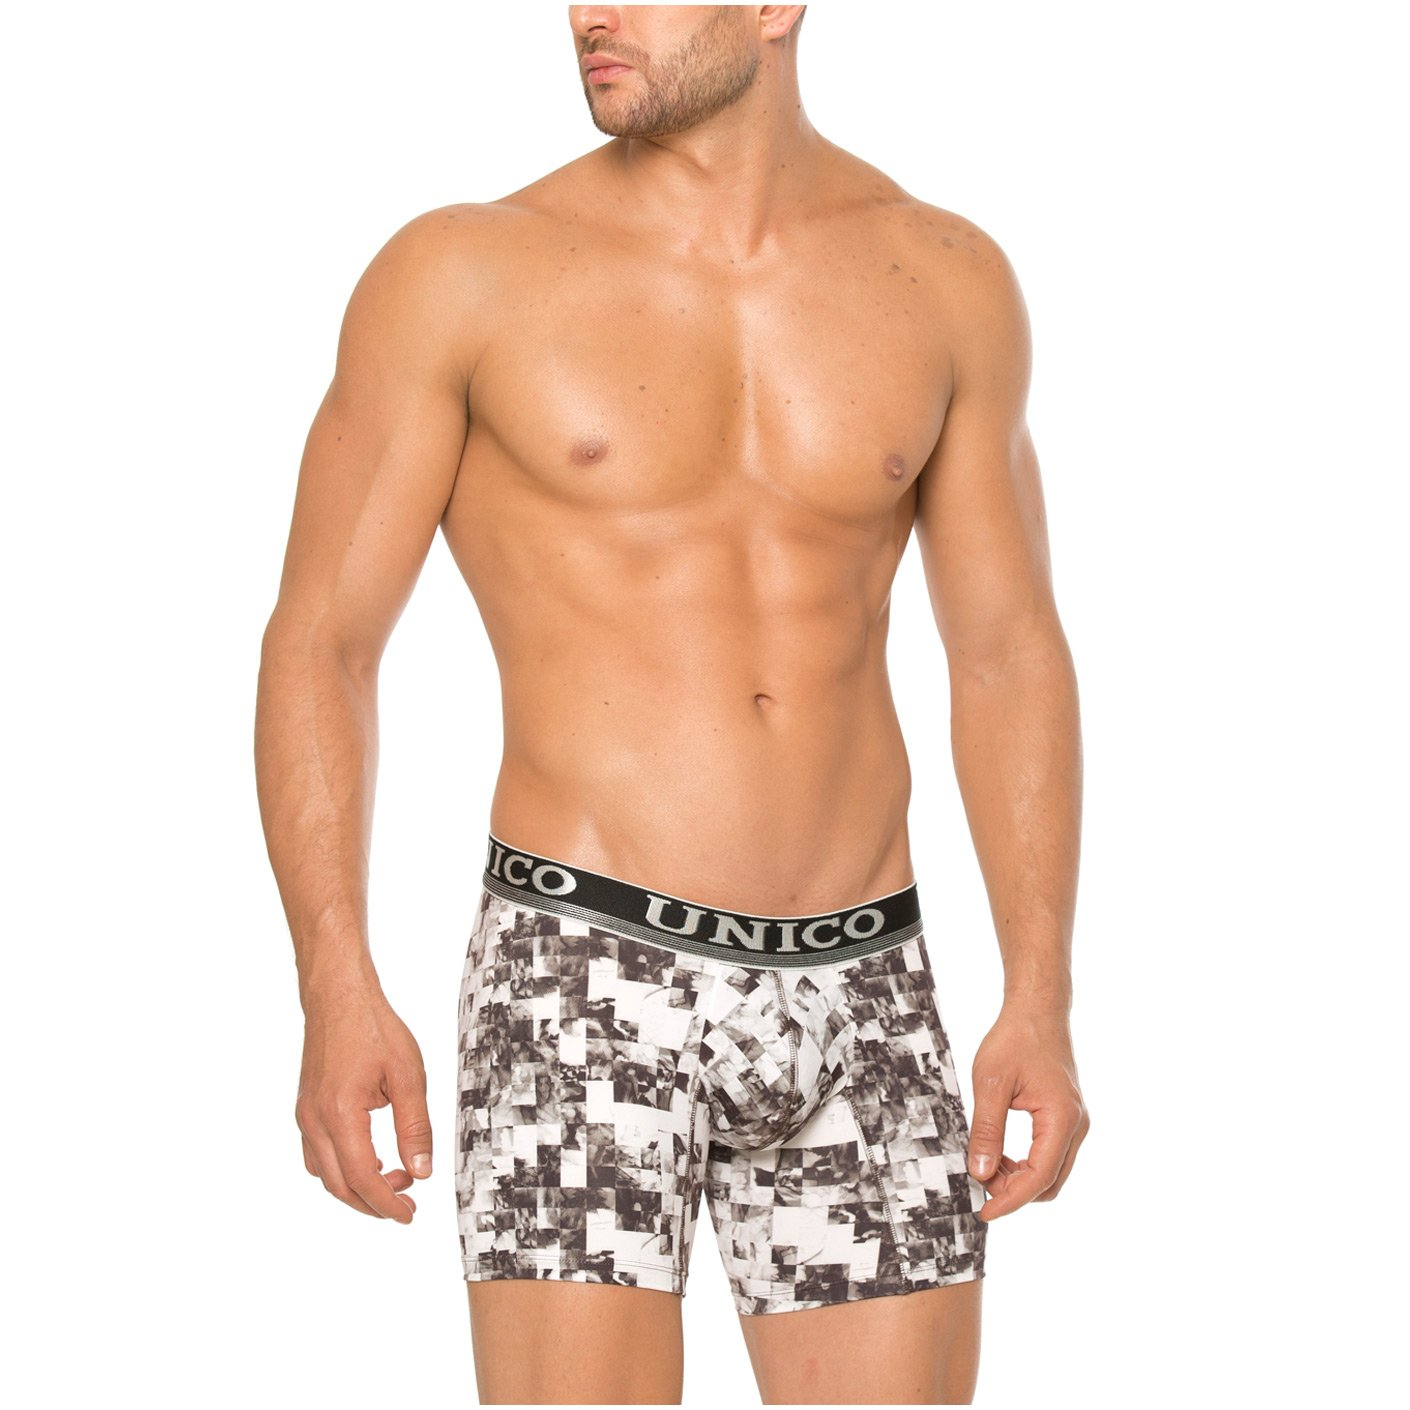 Mundo Unico Colombian Underwear Men Trunk Cotton Medium Boxer Brief Print at Amazon Mens Clothing store: